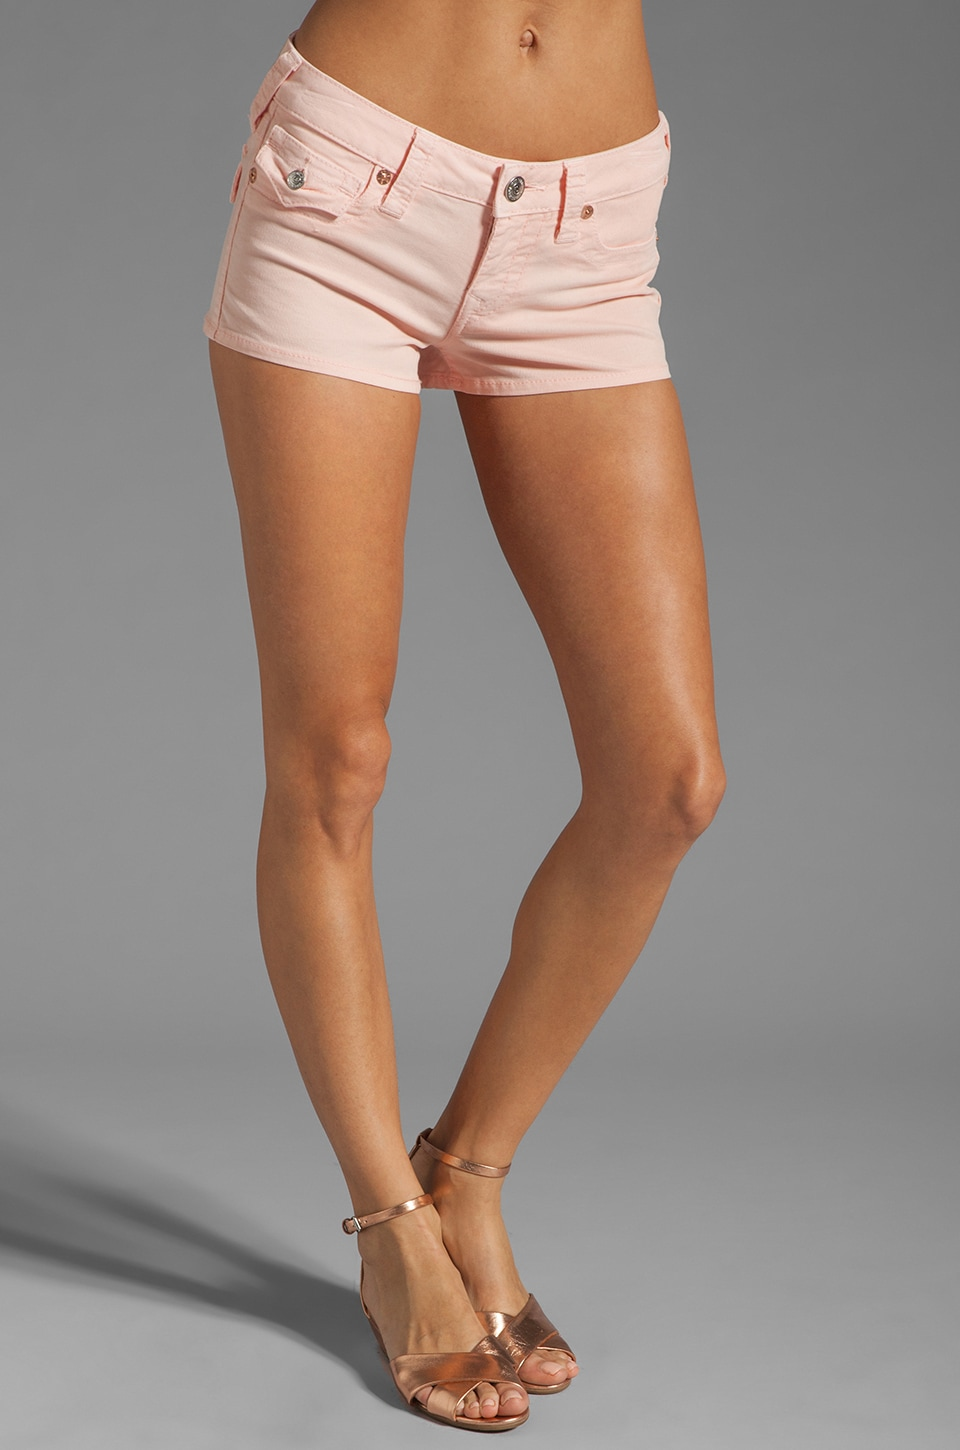 True Religion Joey Short in Baby Pink